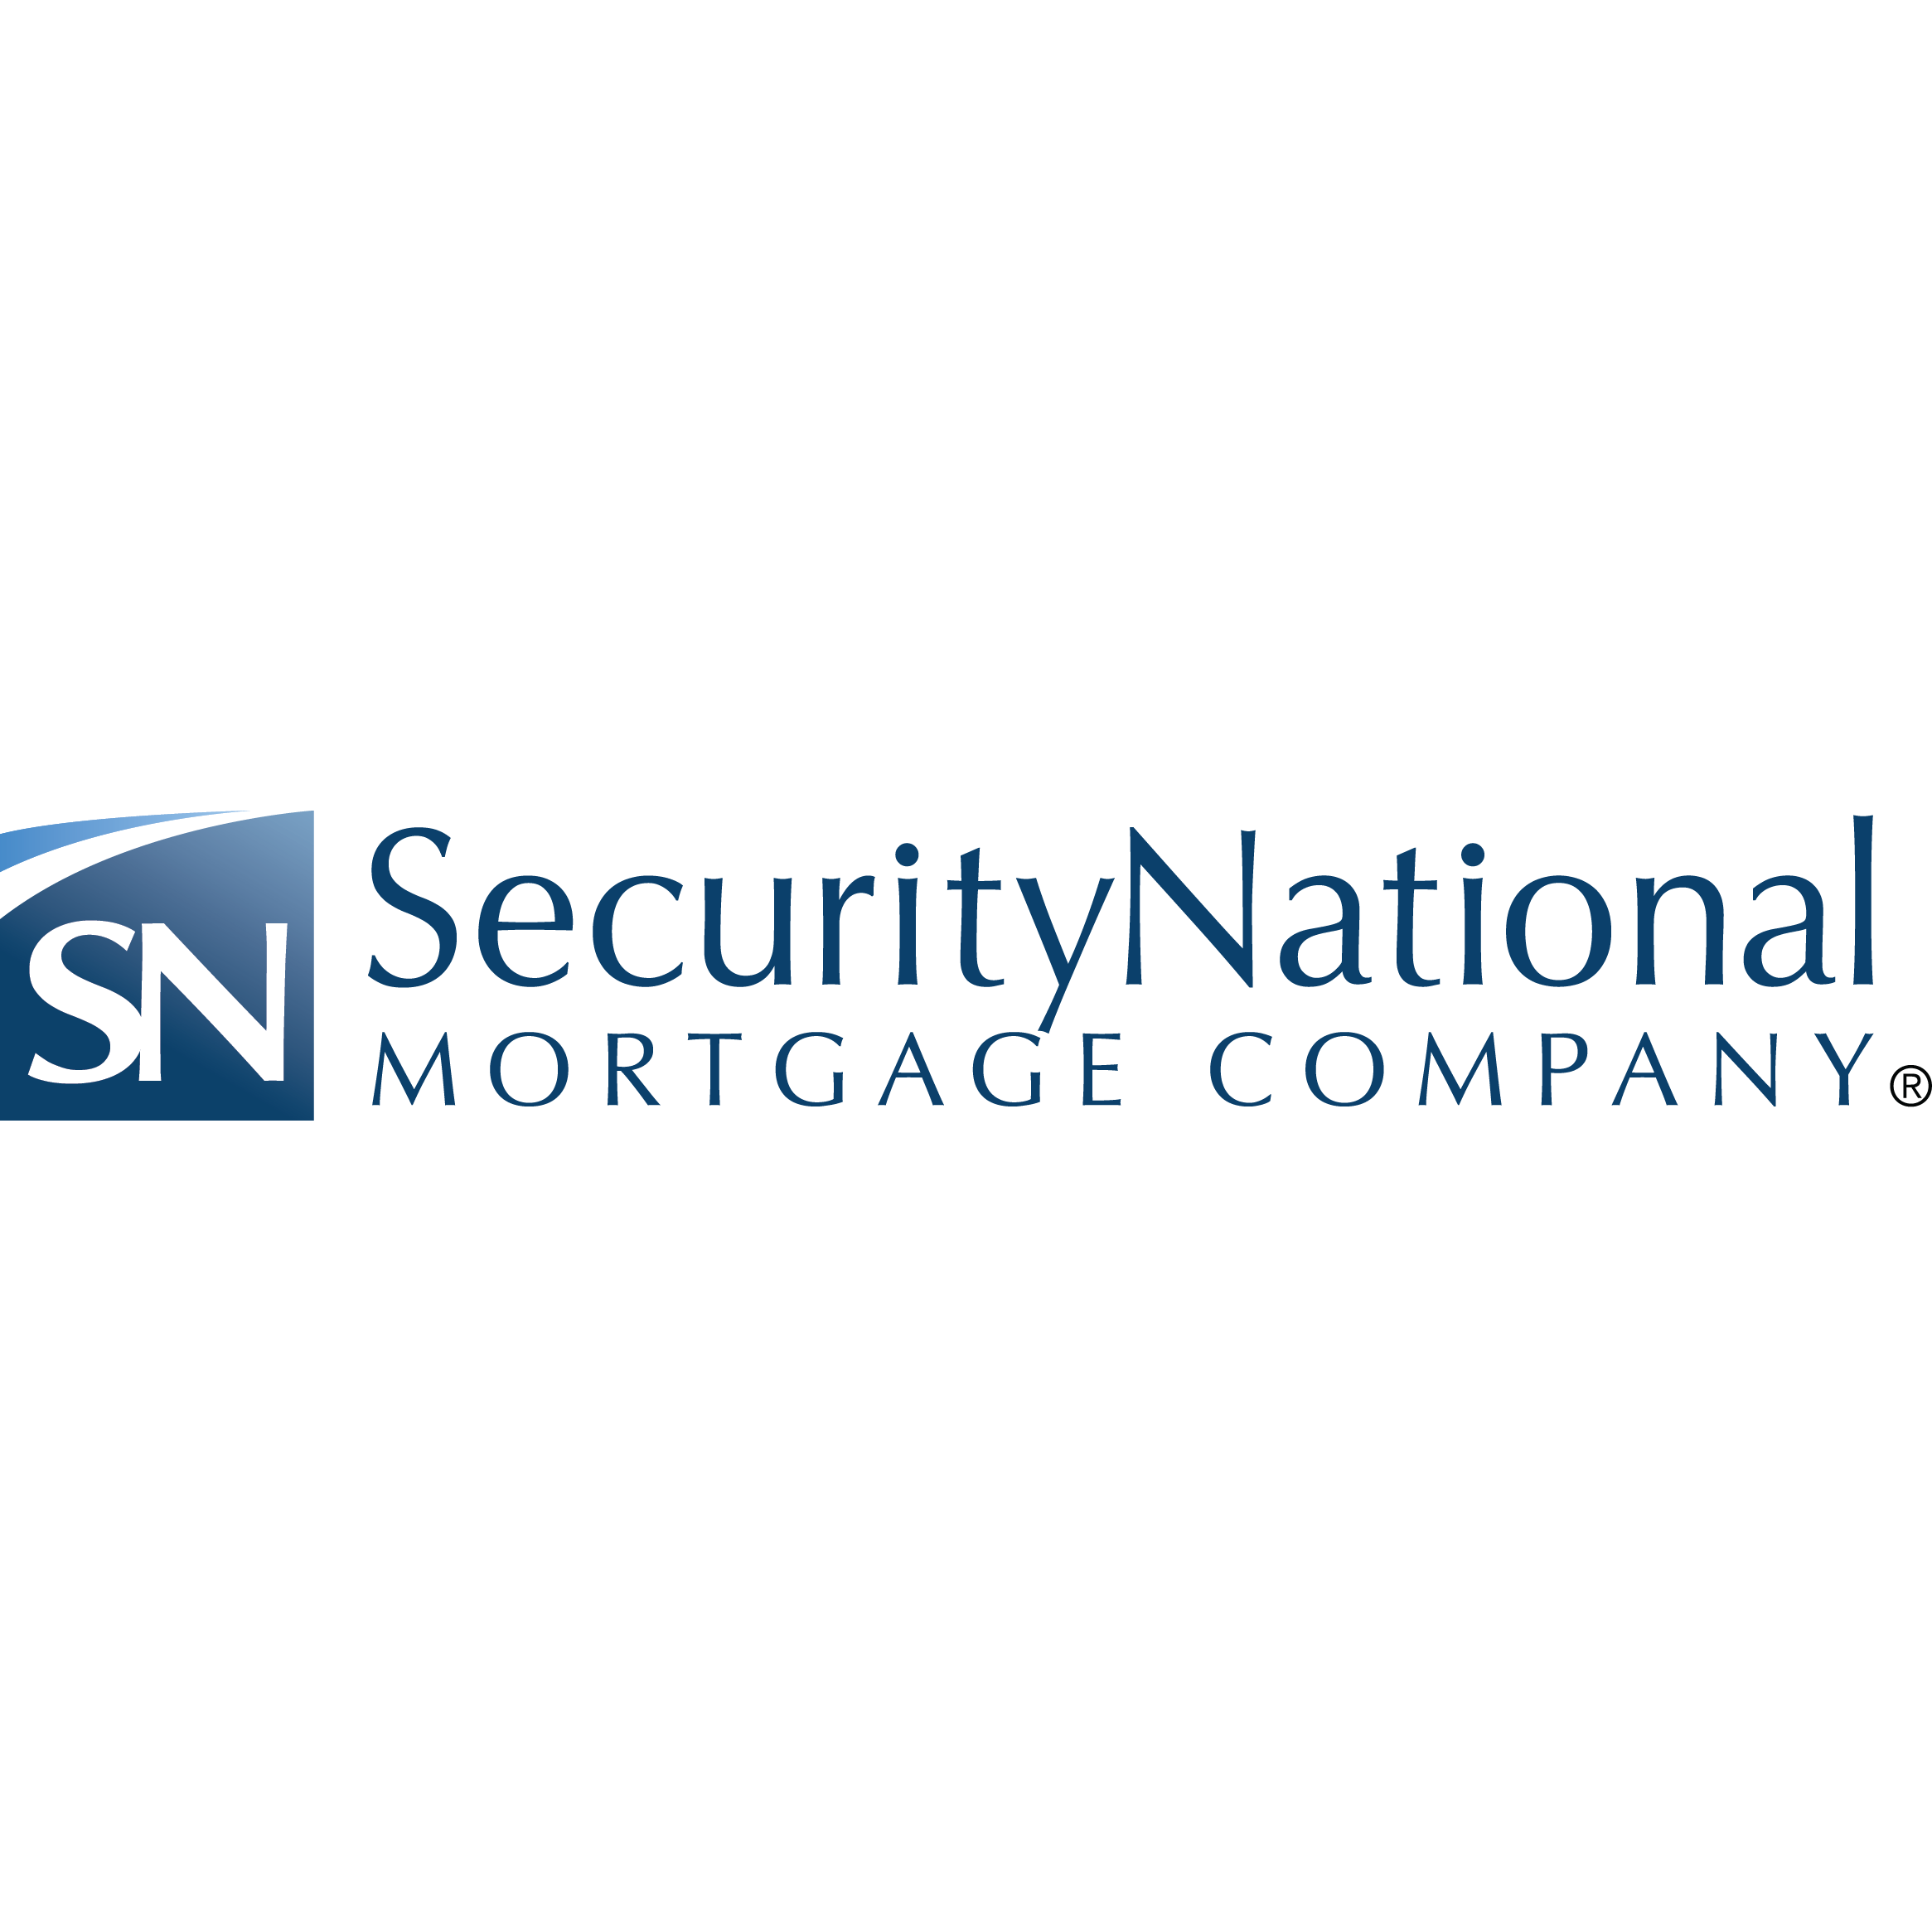 Jimmie Darland NMLS 226785 SecurityNational Mortgage Round Rock Office image 1